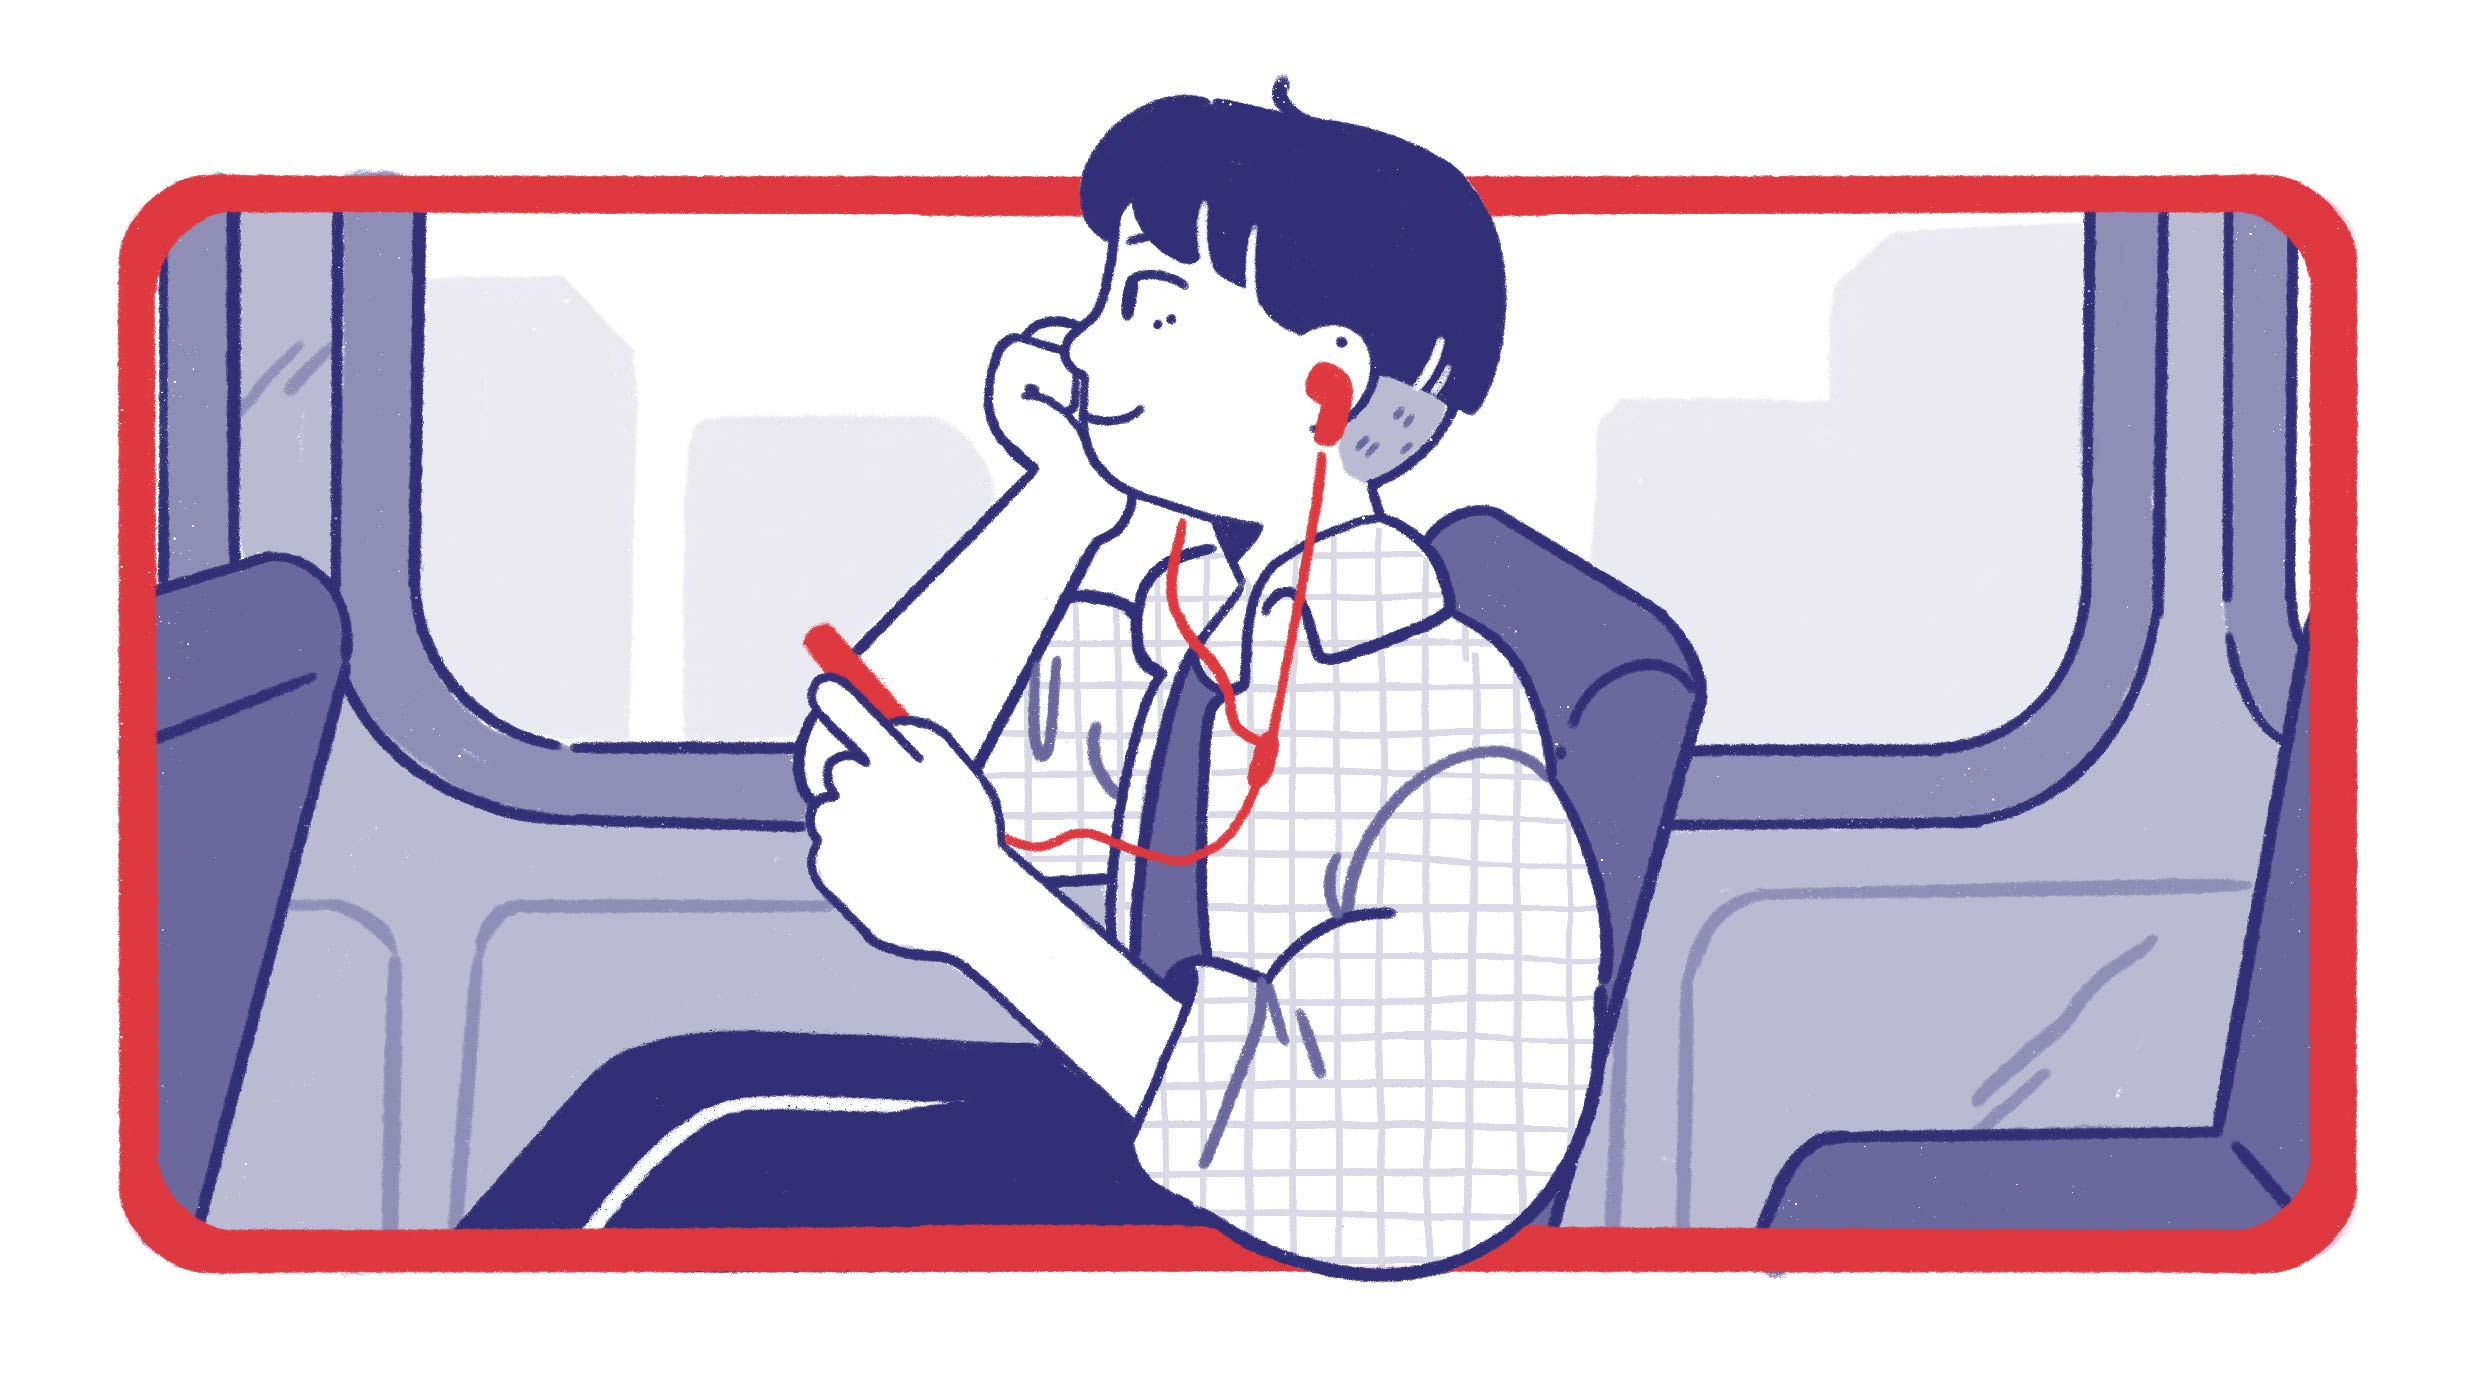 a person who is listening to a podcast on a bus